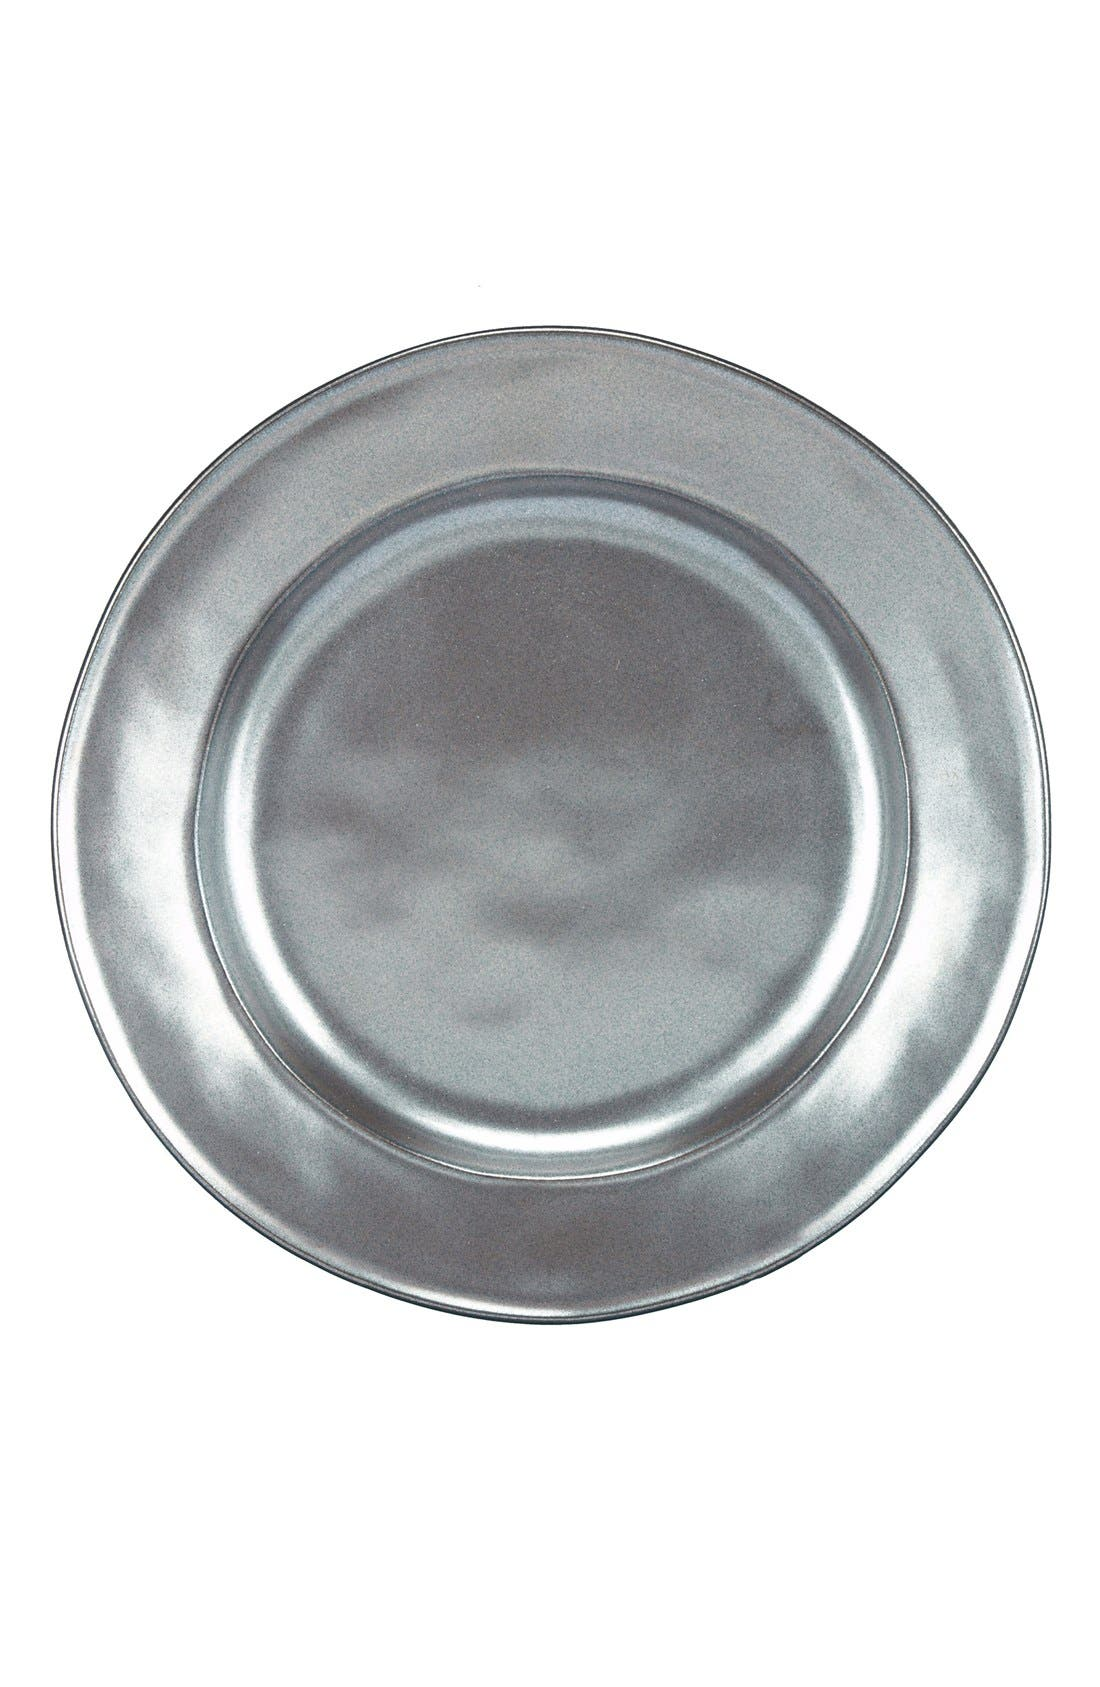 'Pewter' Ceramic Salad Plate,                         Main,                         color, Pewter